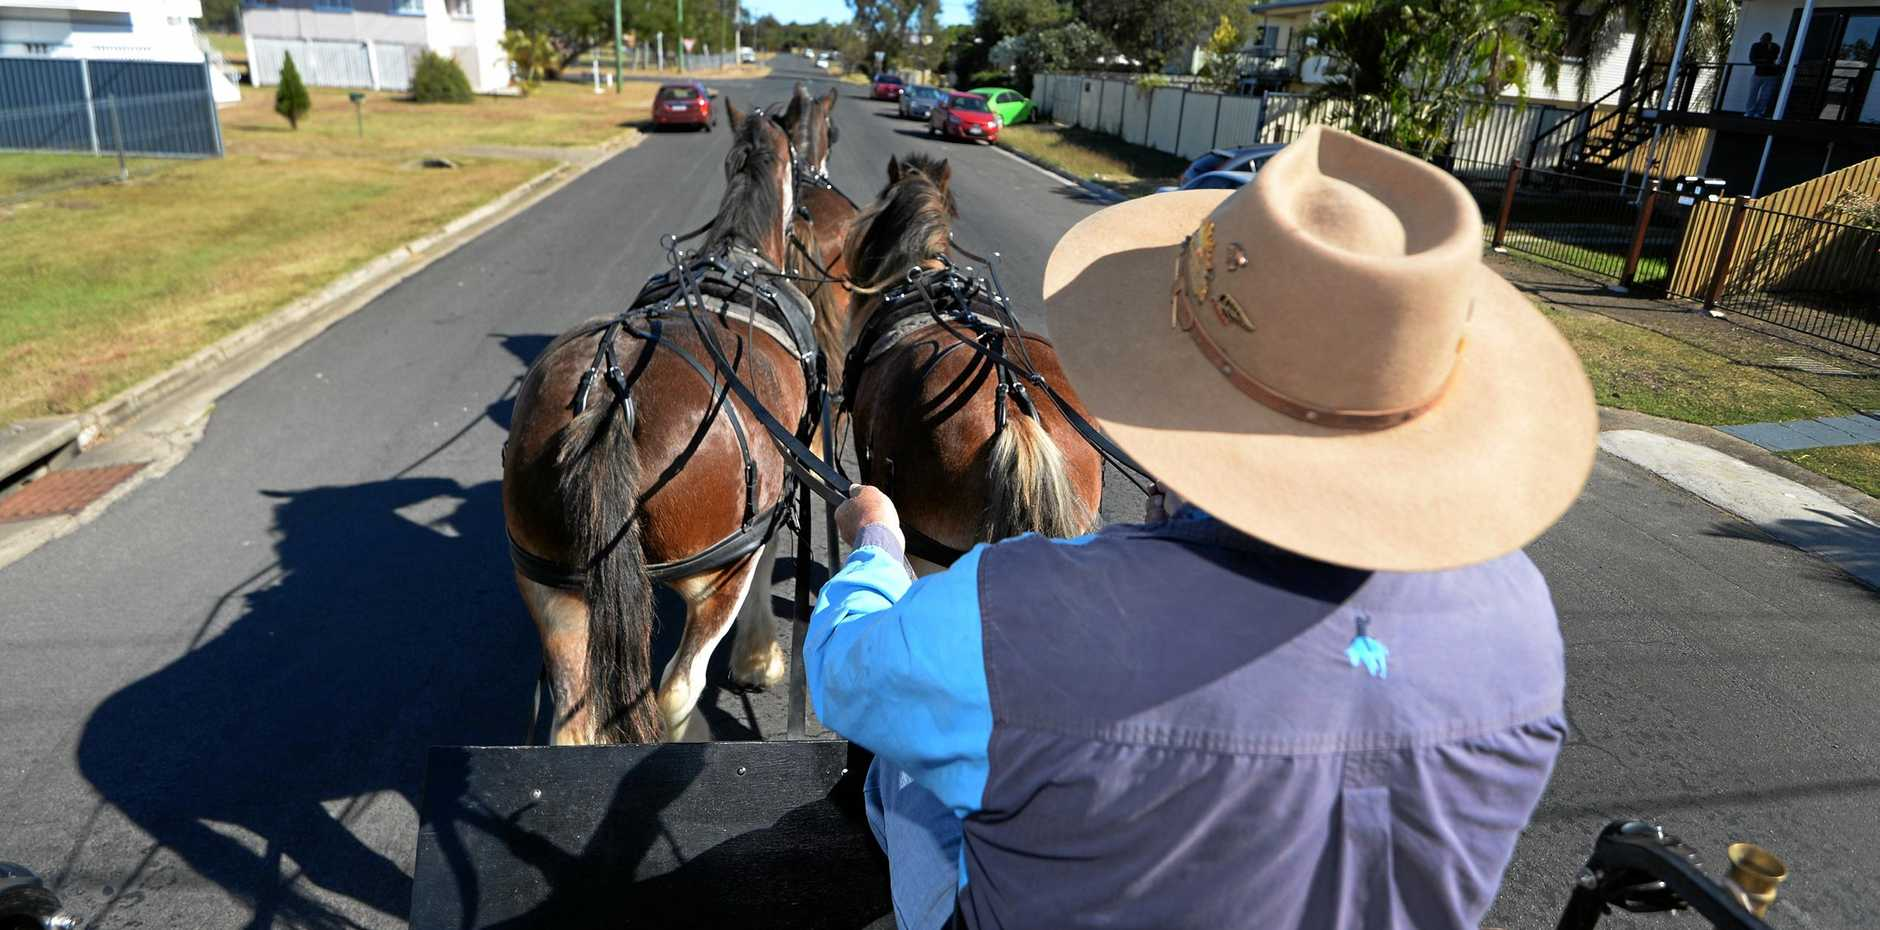 Steve May at the reins while taking his clydesdale horses for a walk in Berserker.